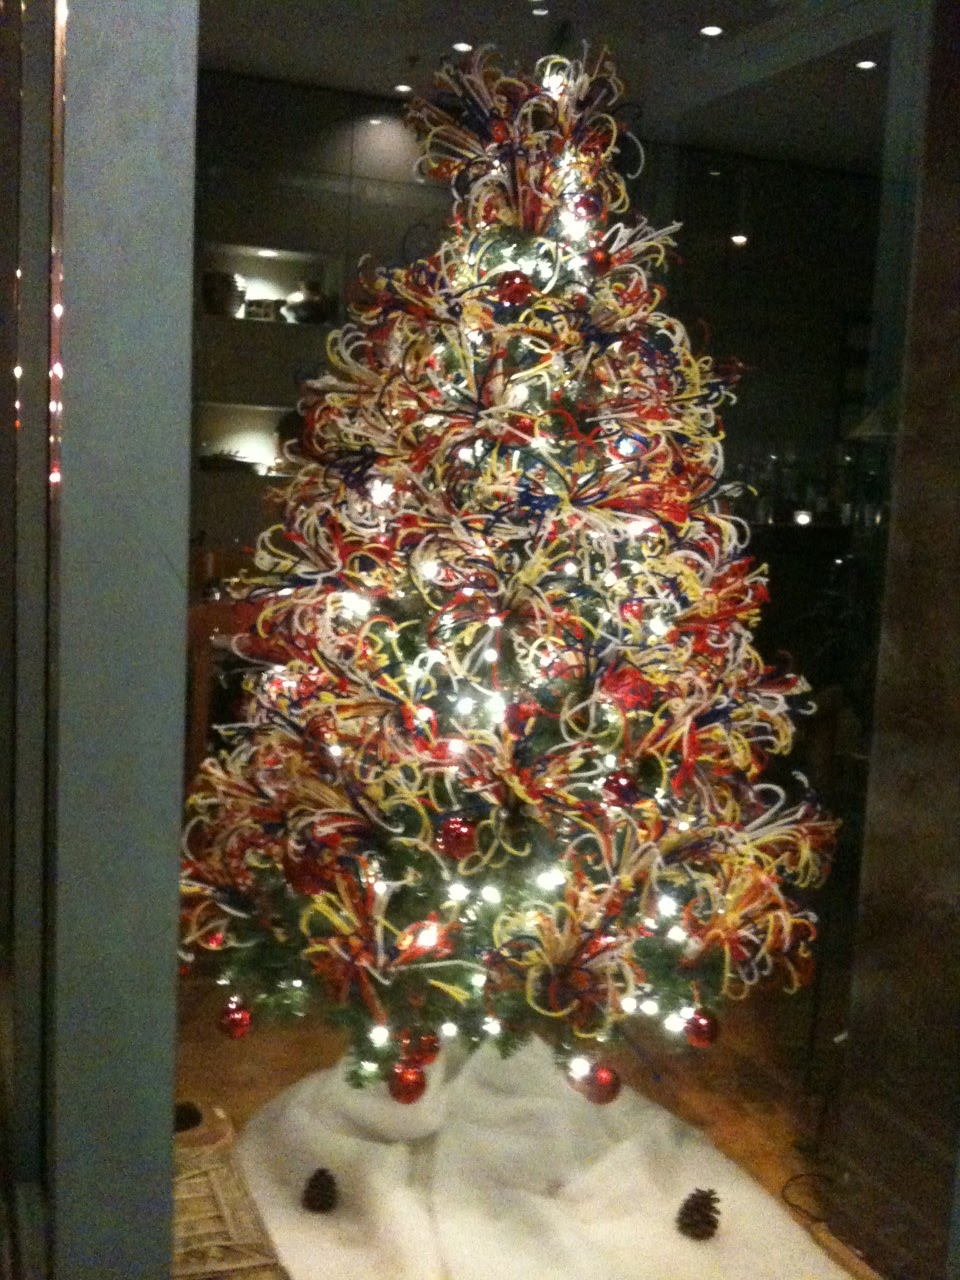 Pipe Cleaner Christmas Trees.A Party Style Pipe Cleaner Christmas Tree